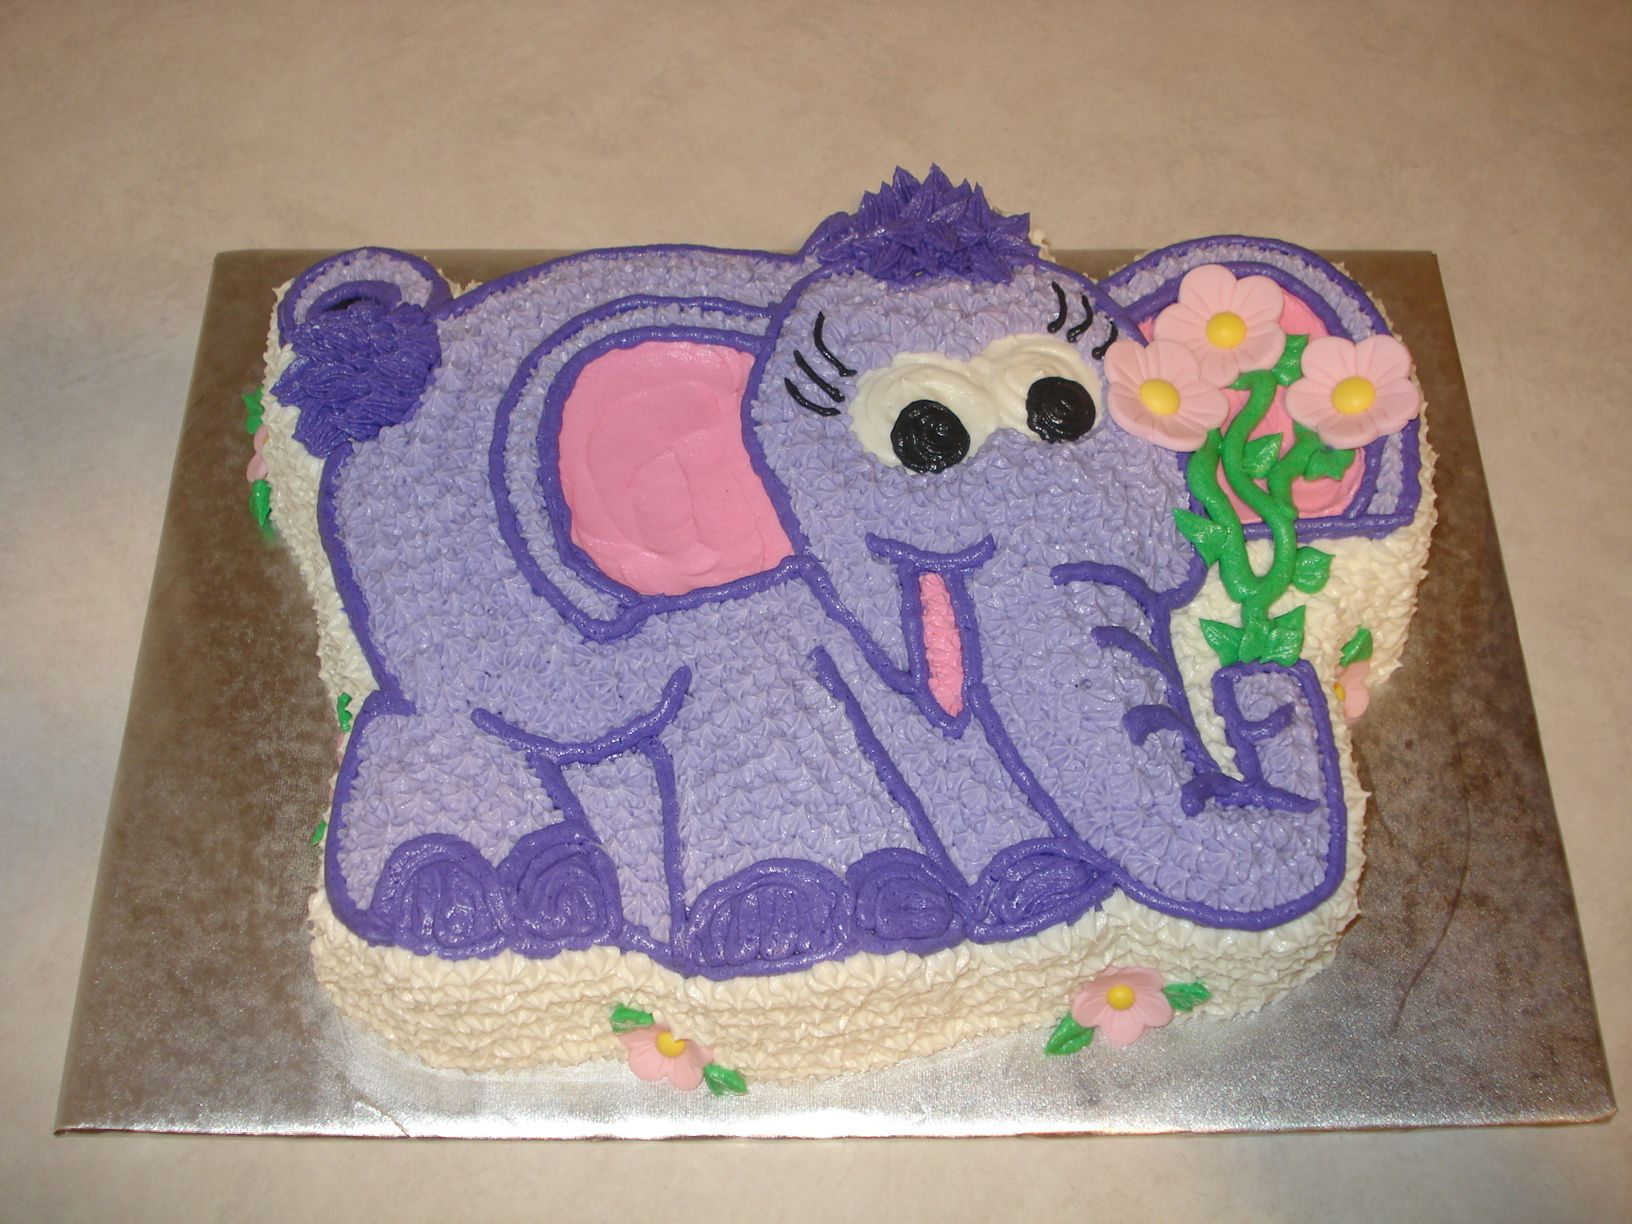 Astounding Elephant Birthday Cake Made From Wilton Form Pan Elephant Birthday Cards Printable Trancafe Filternl